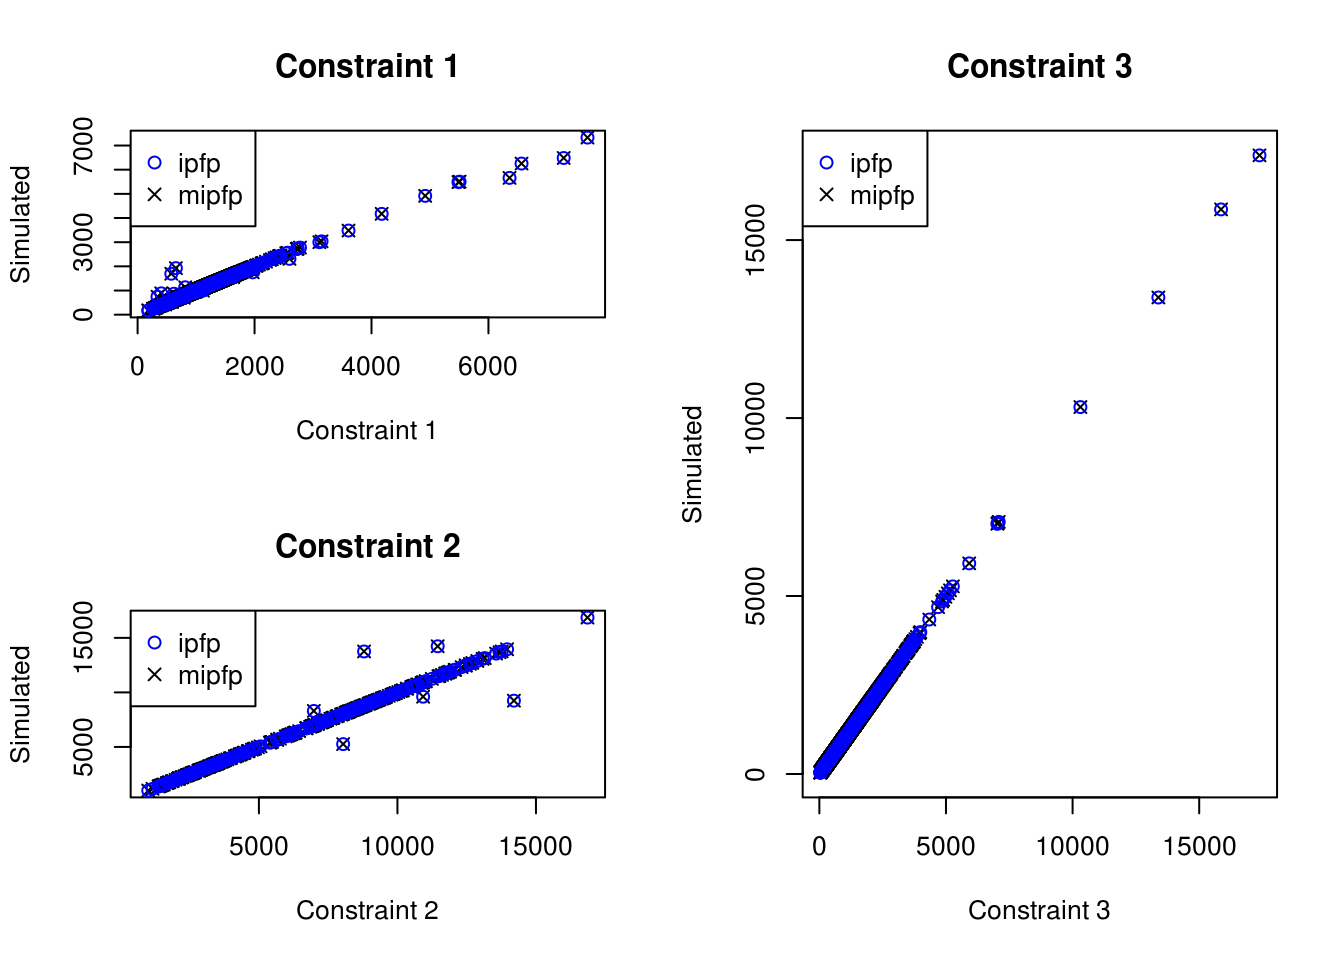 Scatter plot of the relationship between observed cell counts for all categories and all zones from the census (x axis) and the simulated cell counts after IPF (y axis) (ipfp vs mipfp).